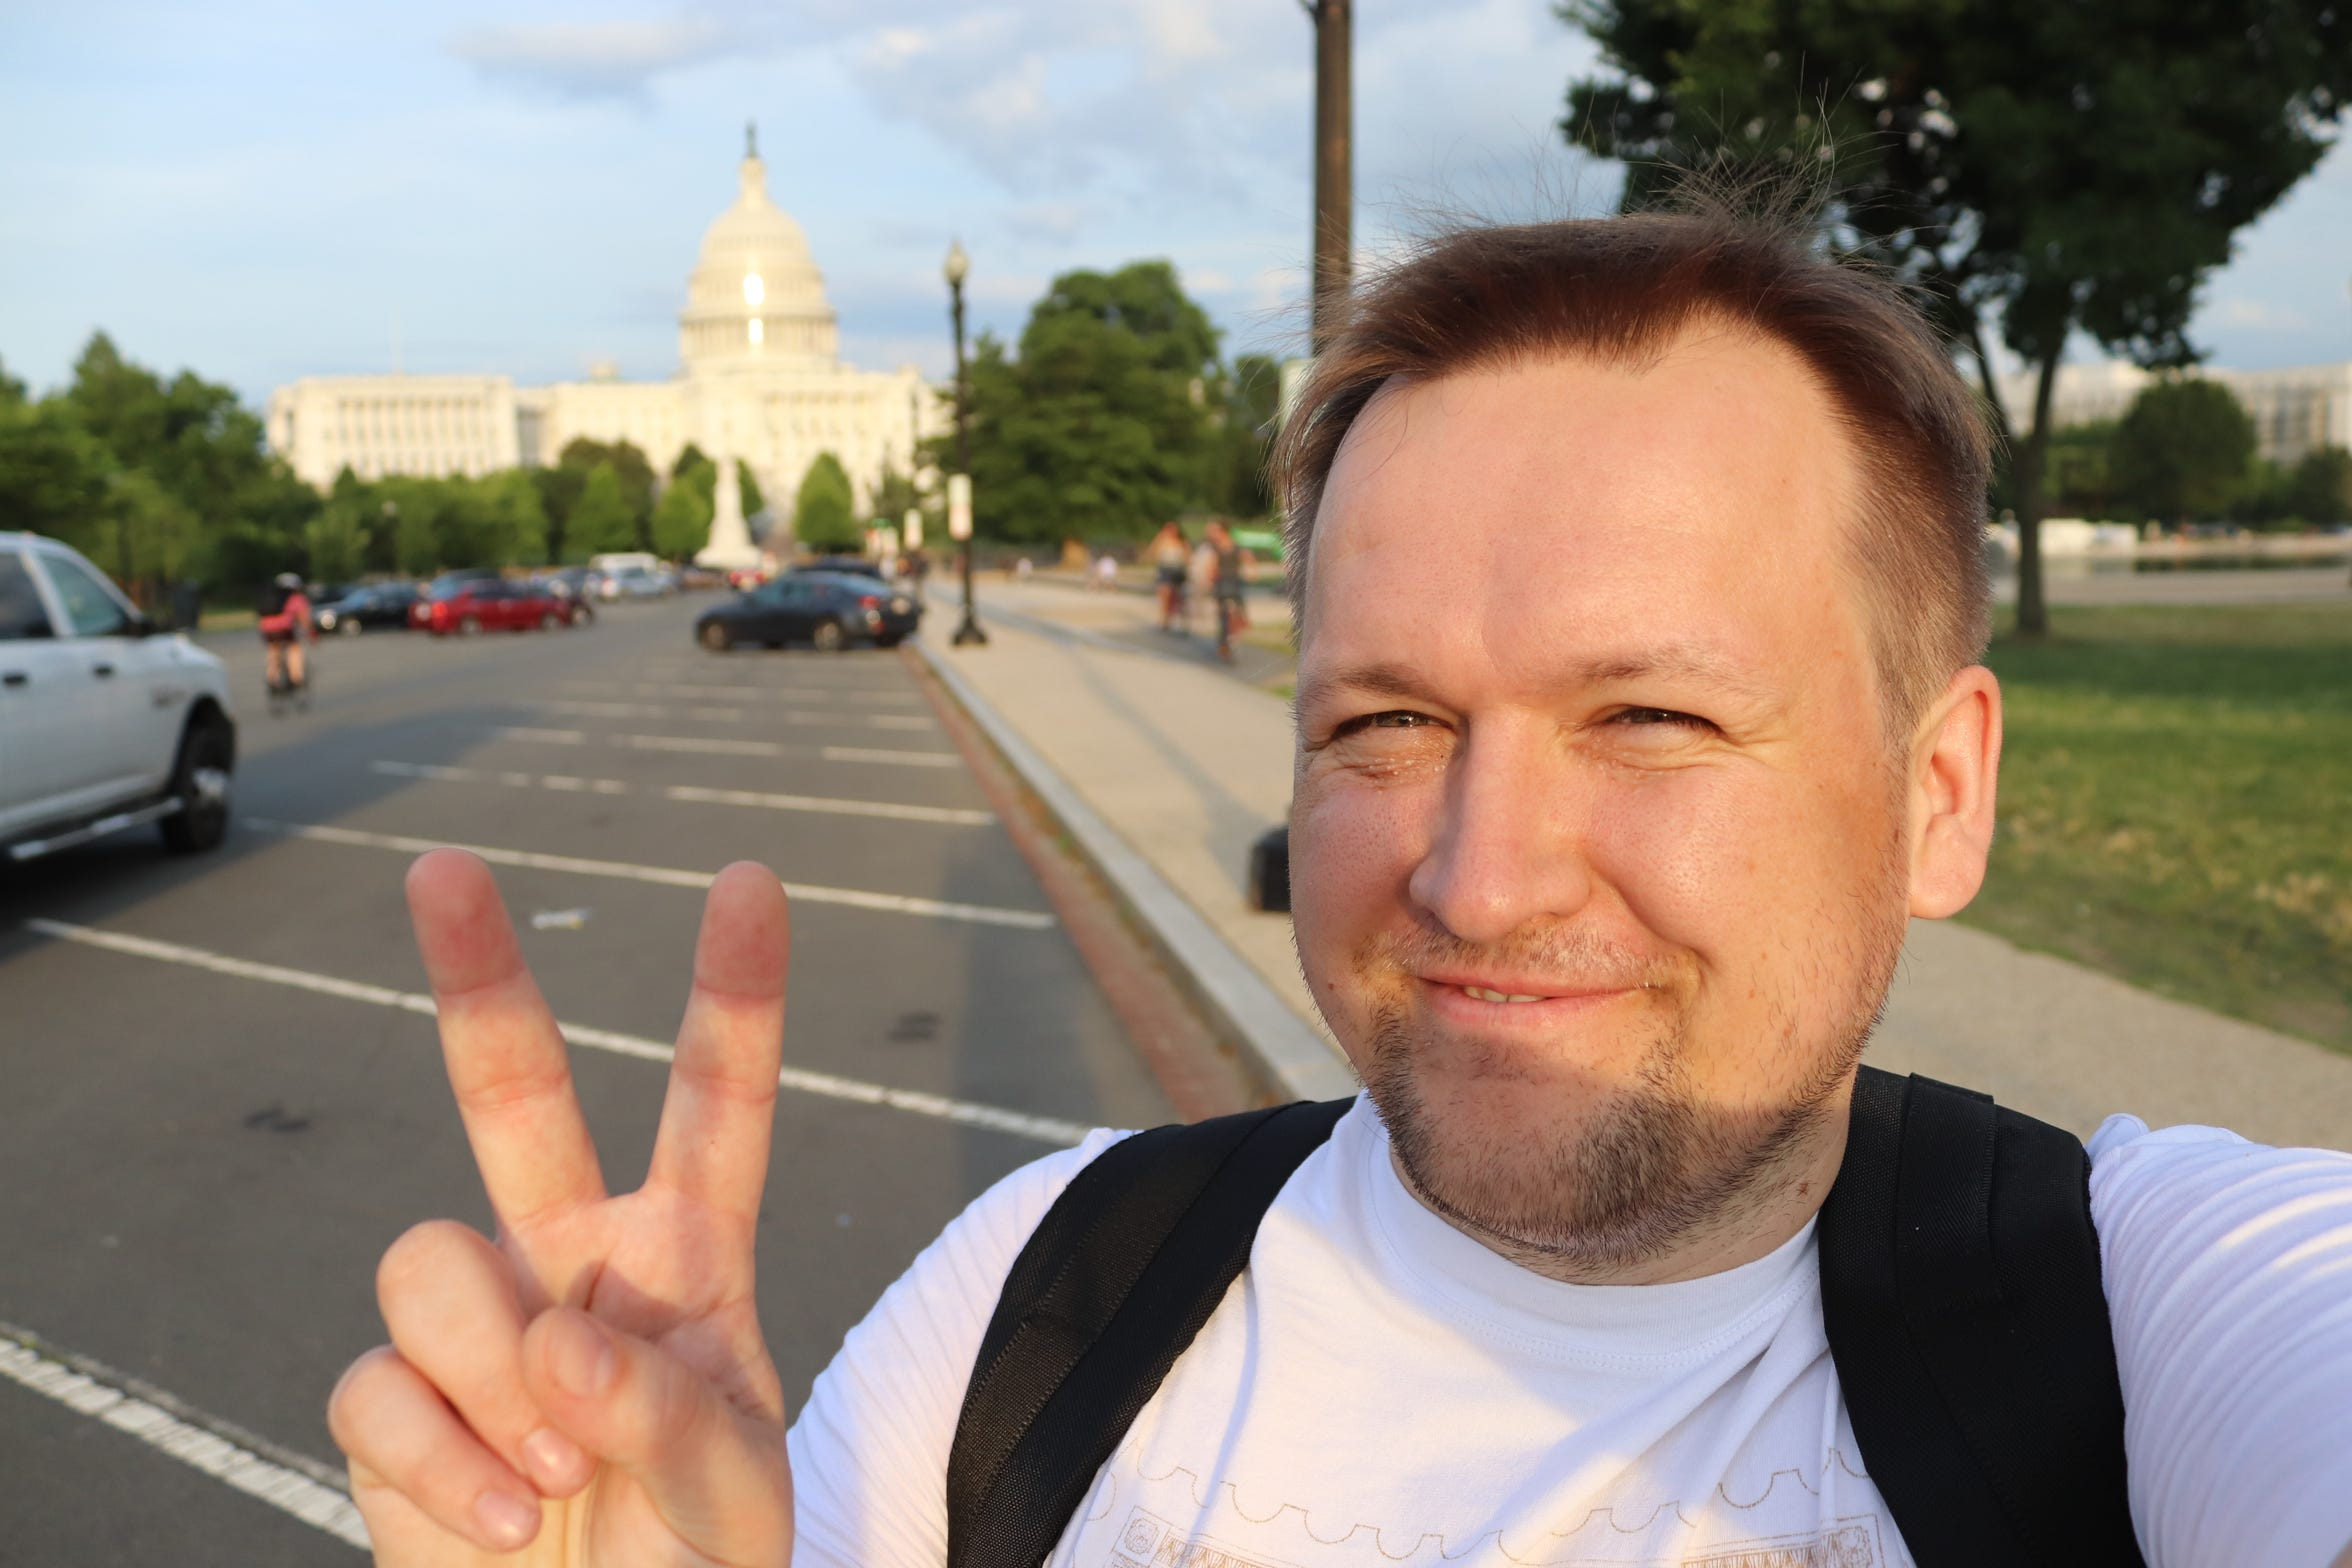 Pavel Alekseev flashes the peace sign near the White House.